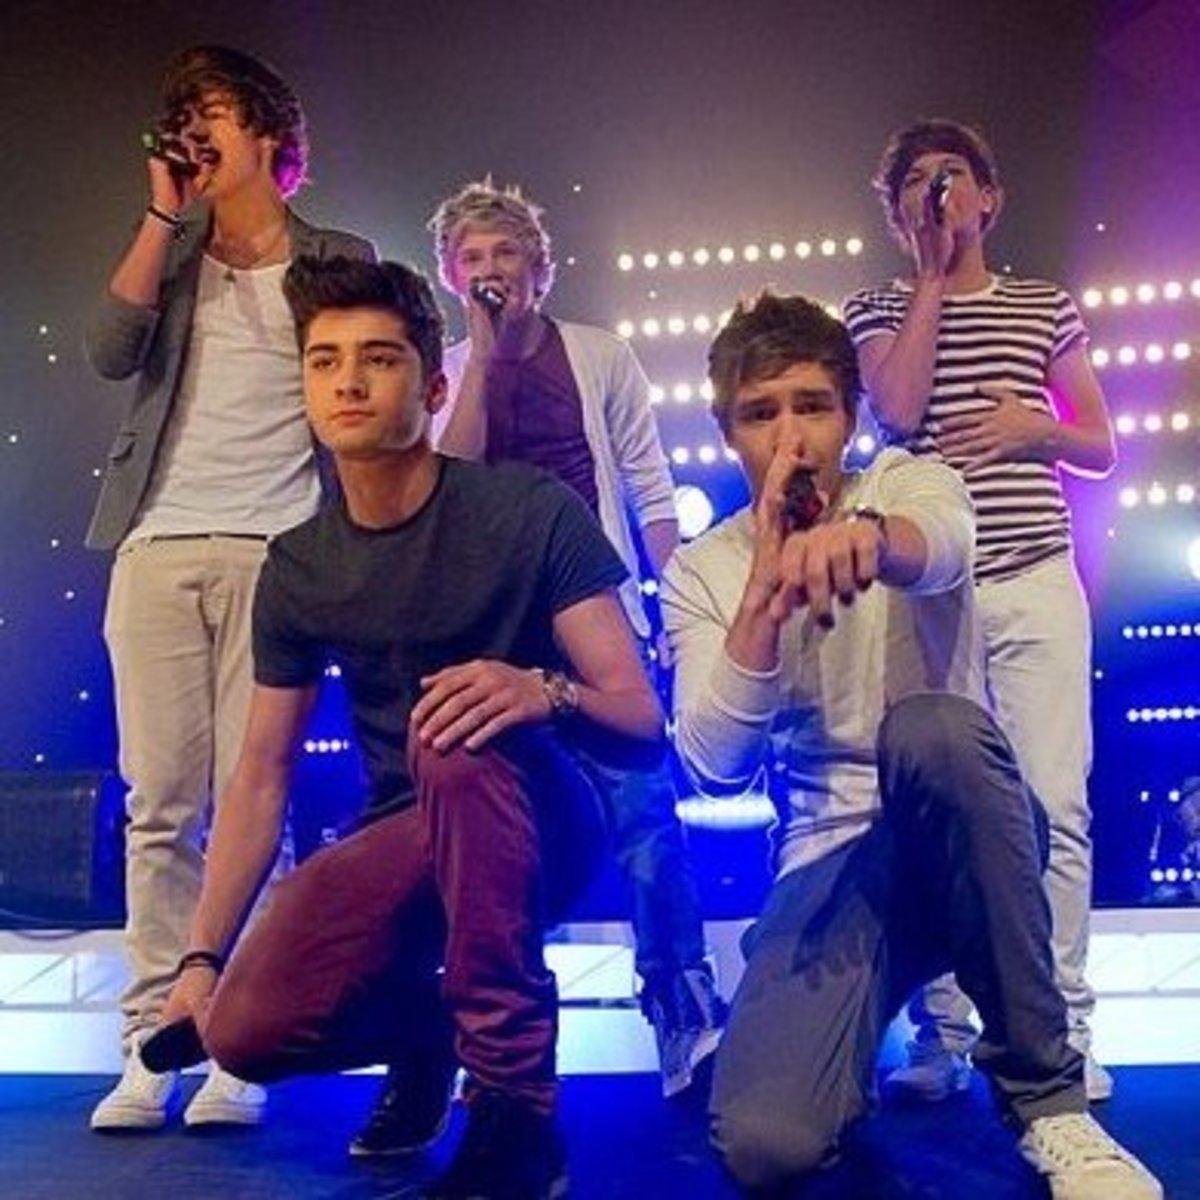 One Direction performing in Sydney. Back l-r Harry Styles, Niall Horan and Louis Tomlinson. Front l-r Zayn Malik and Liam Payne